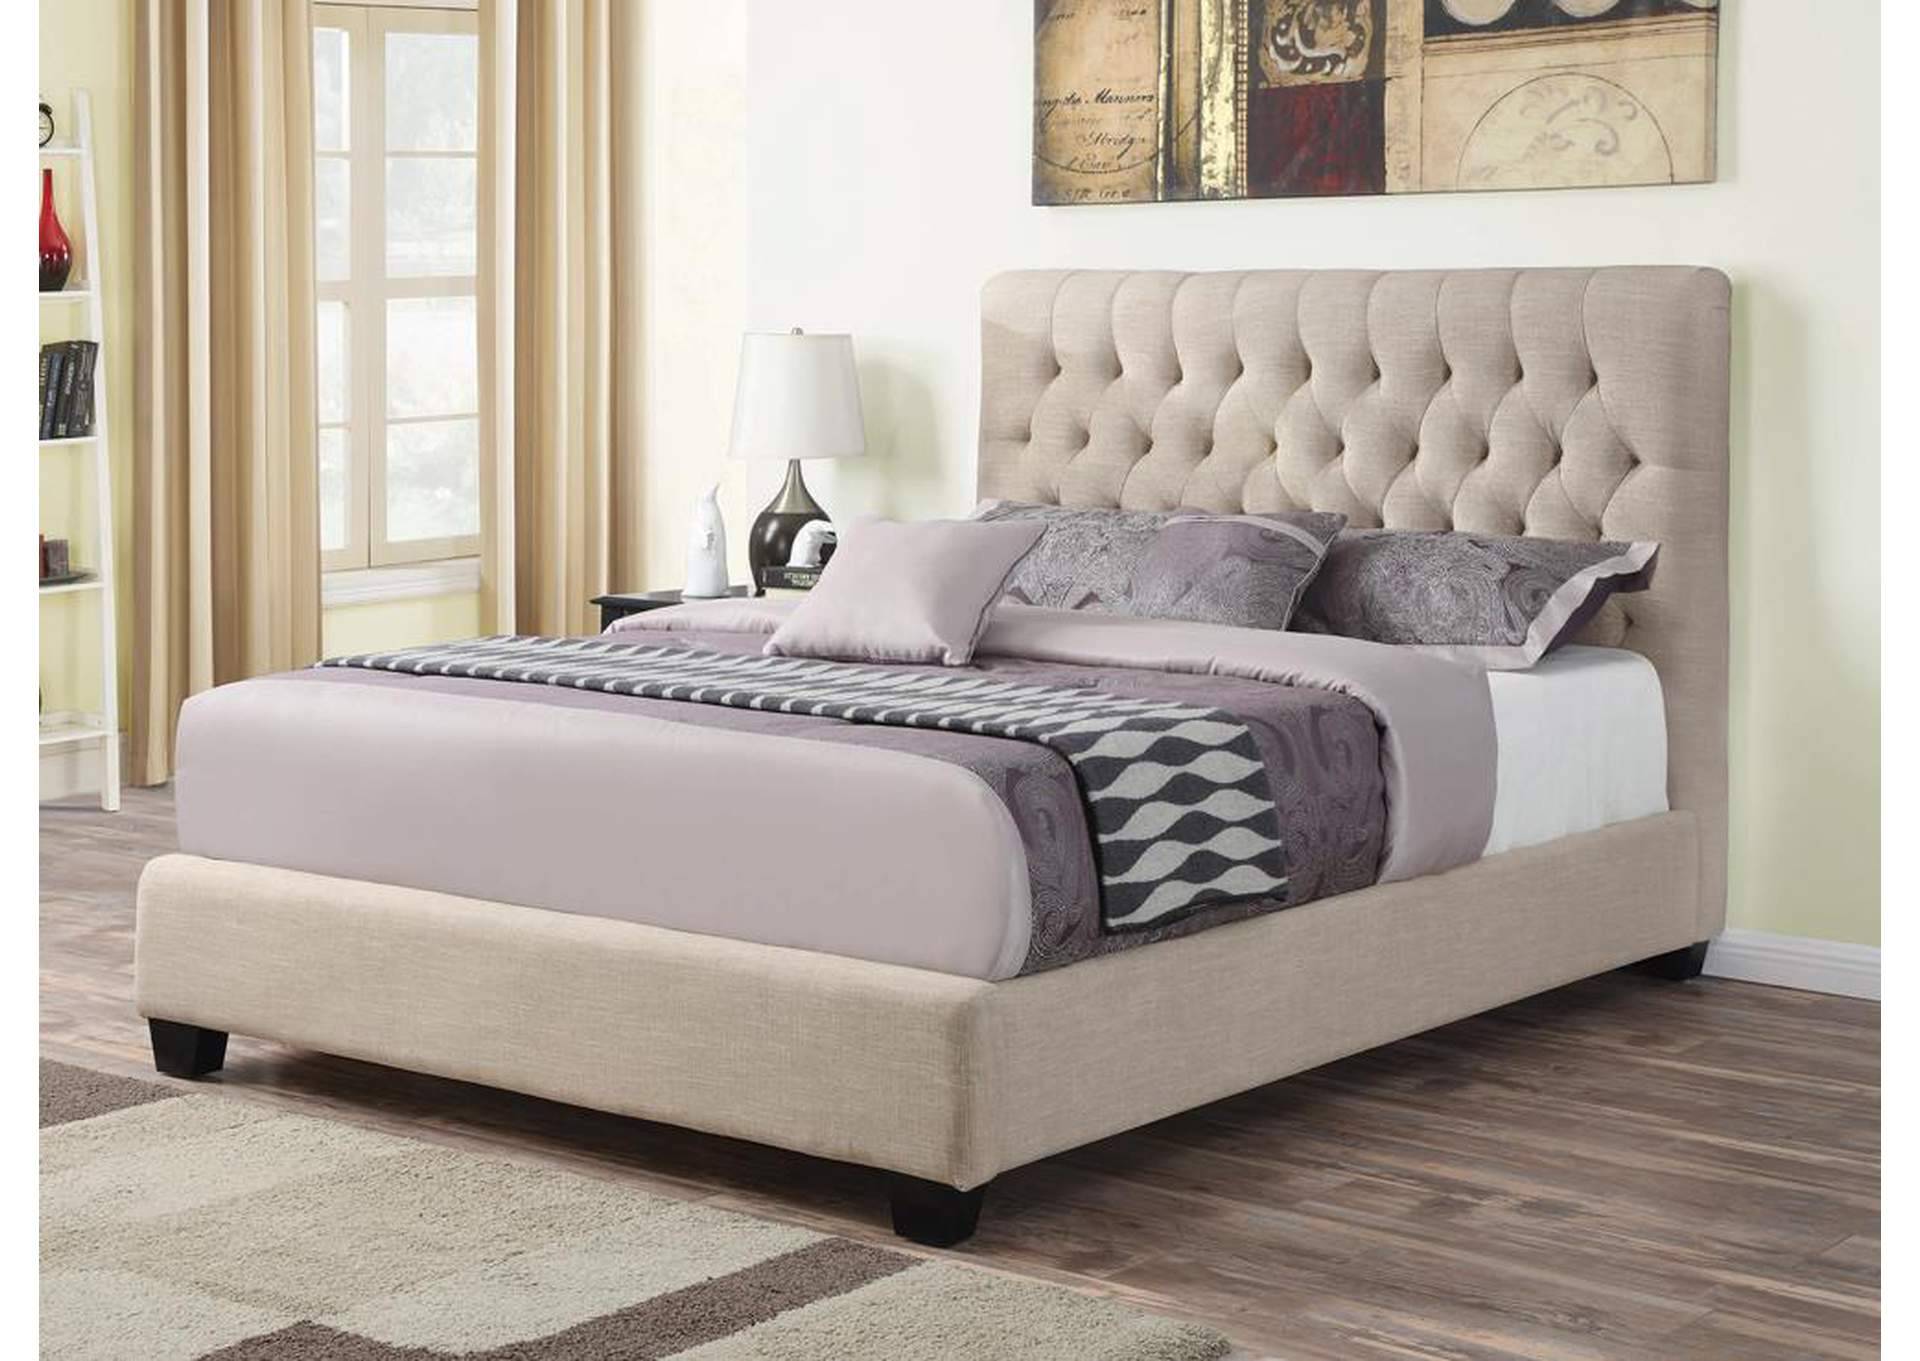 Chloe Oatmeal Upholstered Queen Bed,Coaster Furniture